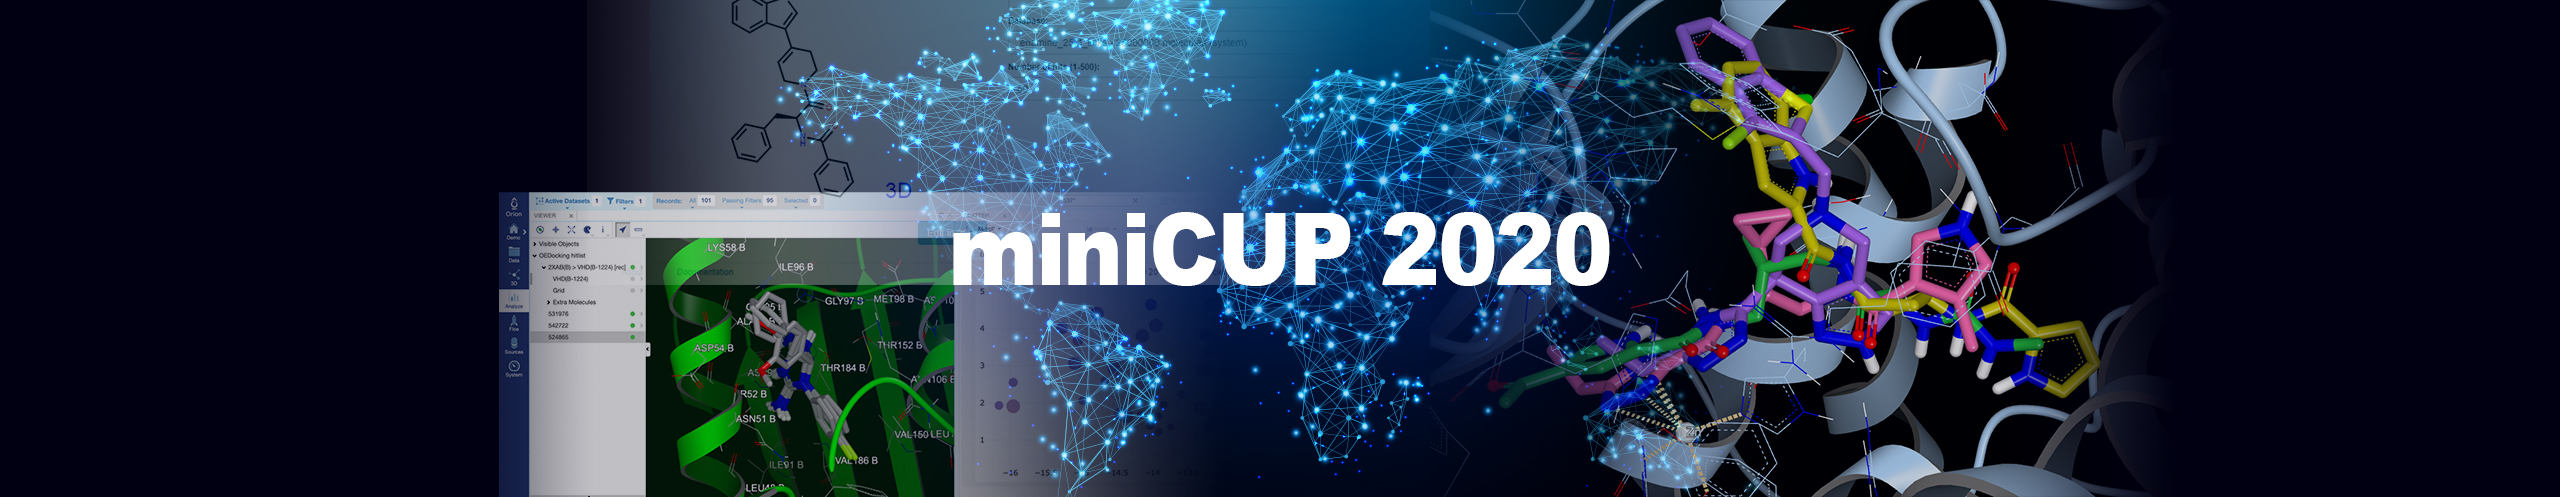 miniCUP - The Americas | Oct. 20, 2020